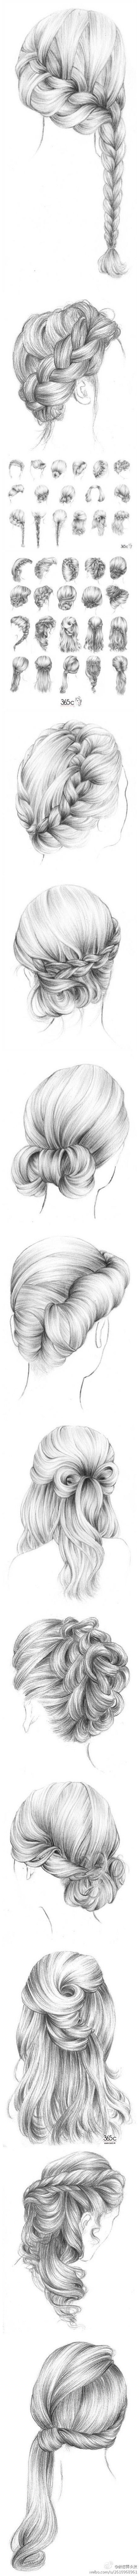 Lots of cute hair drawings